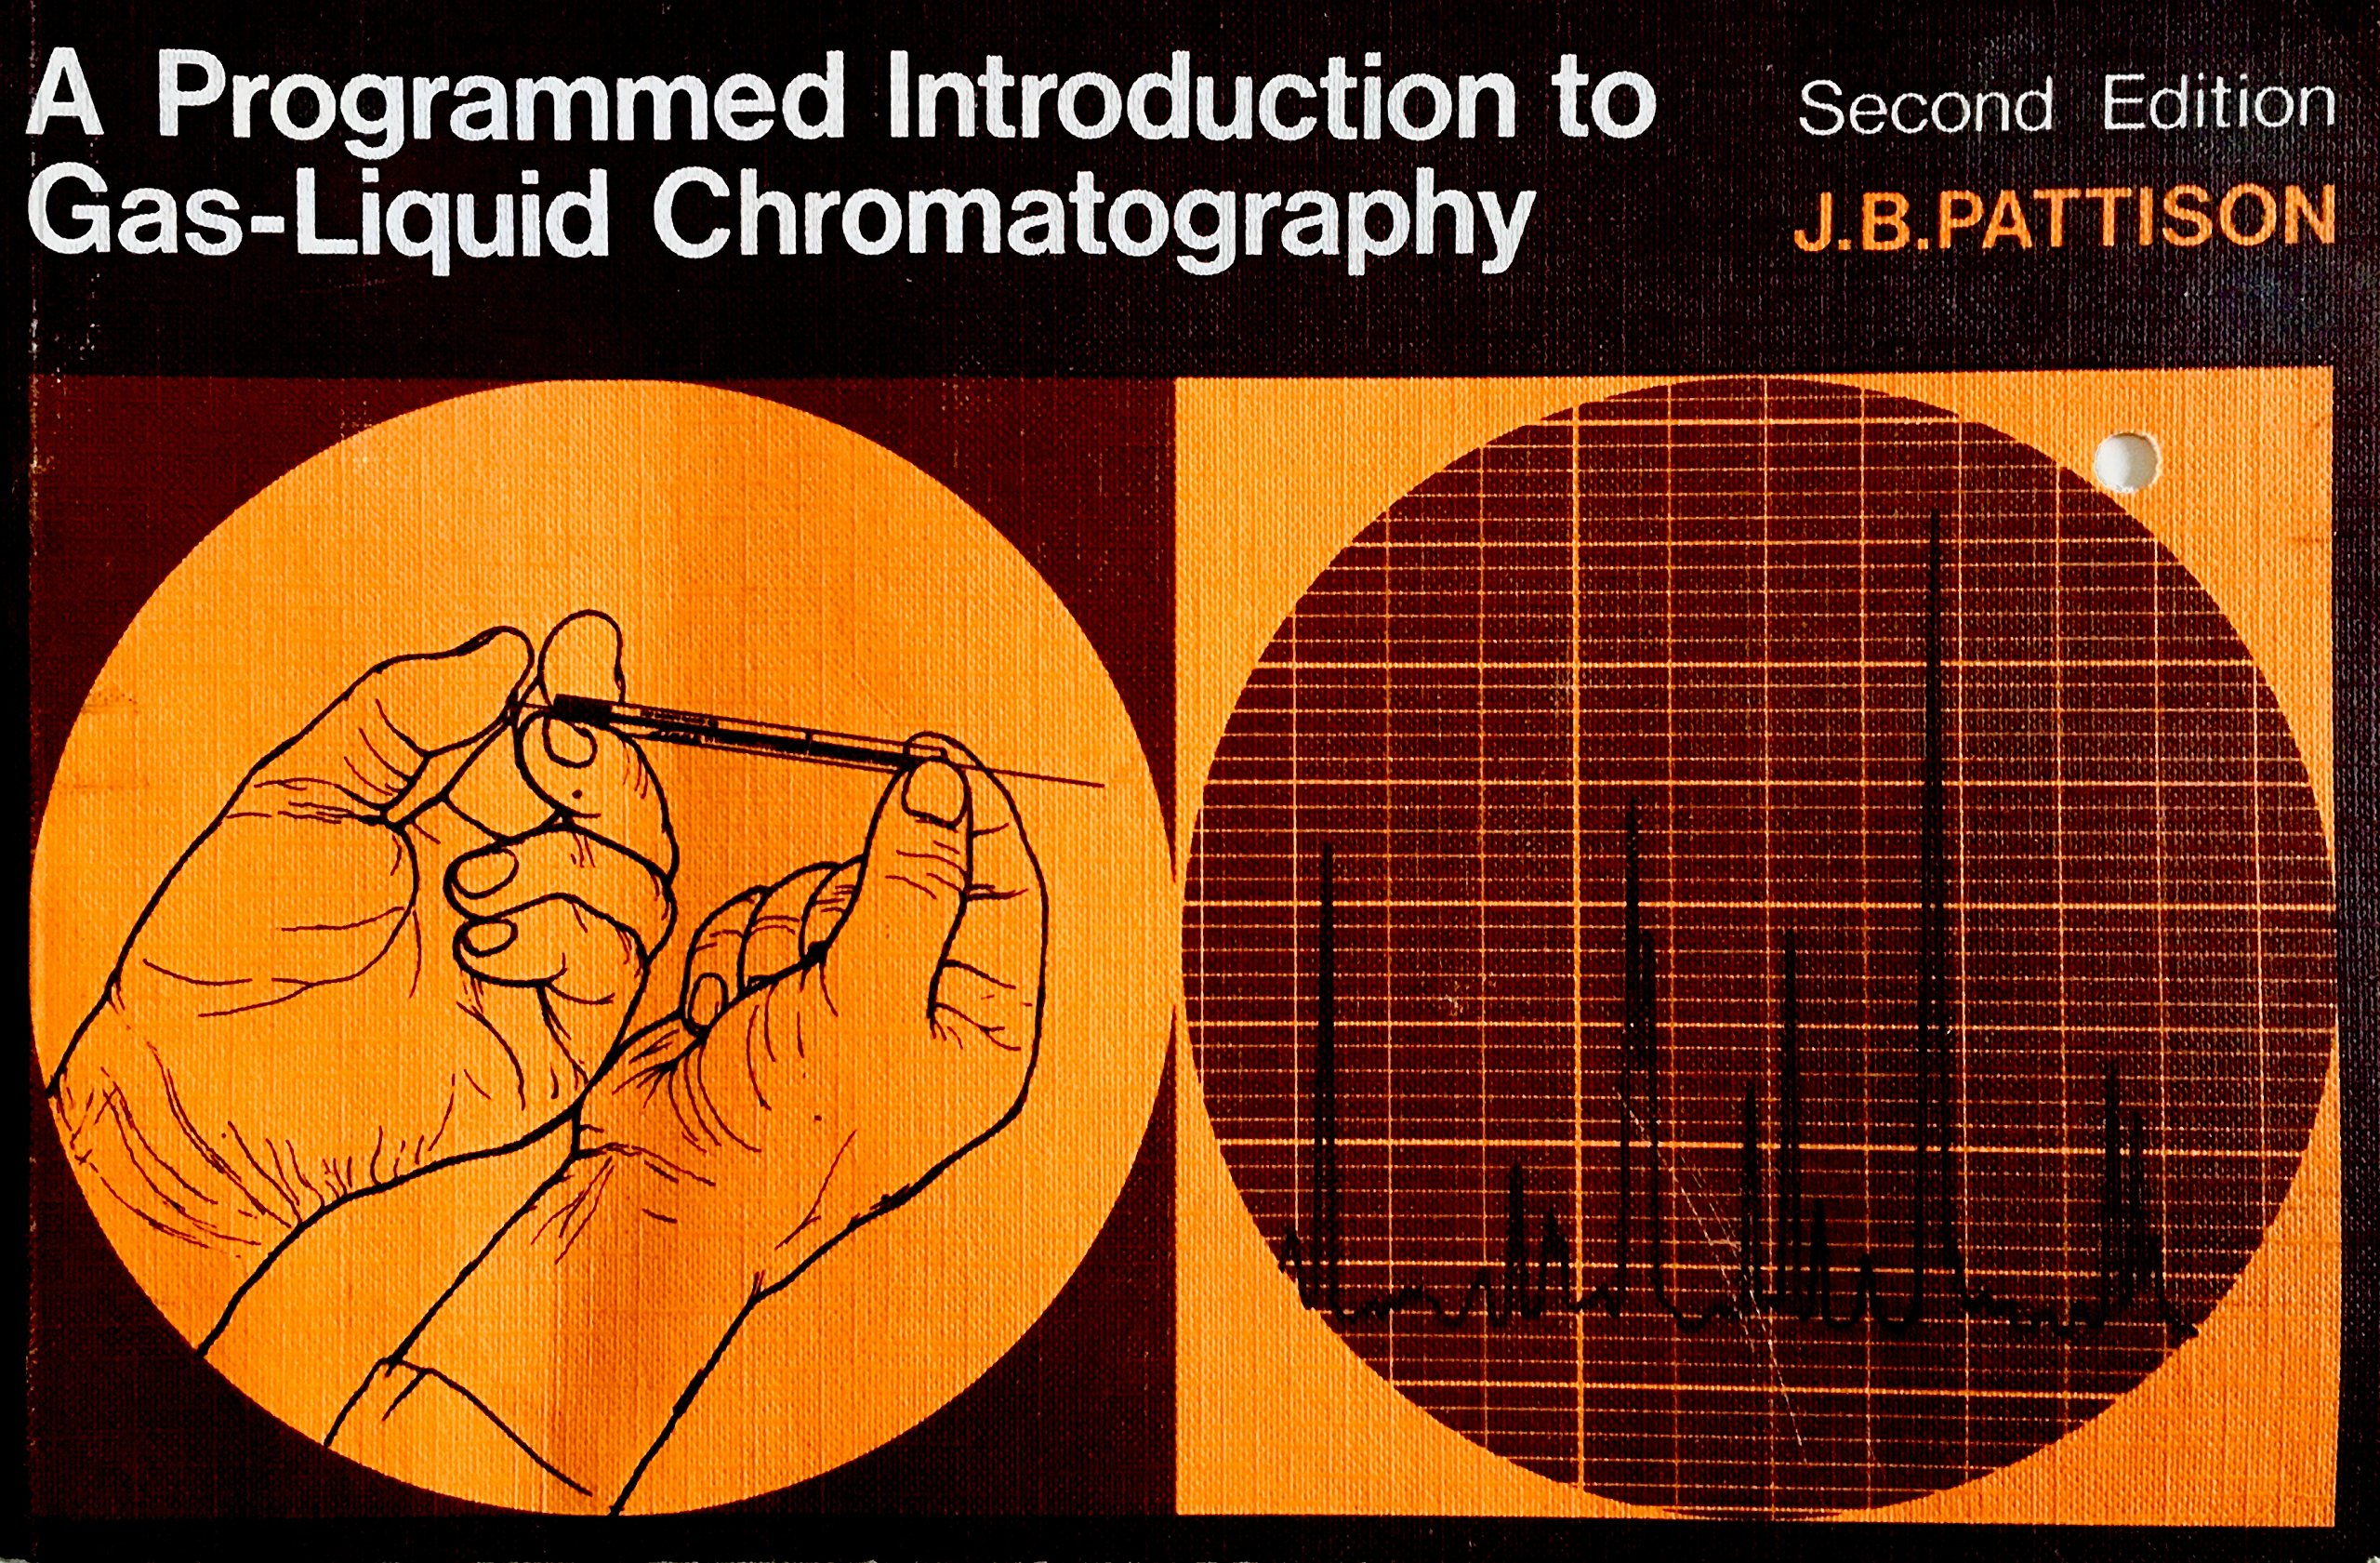 Programmed Introduction to Gas-liquid Chromatography: J B